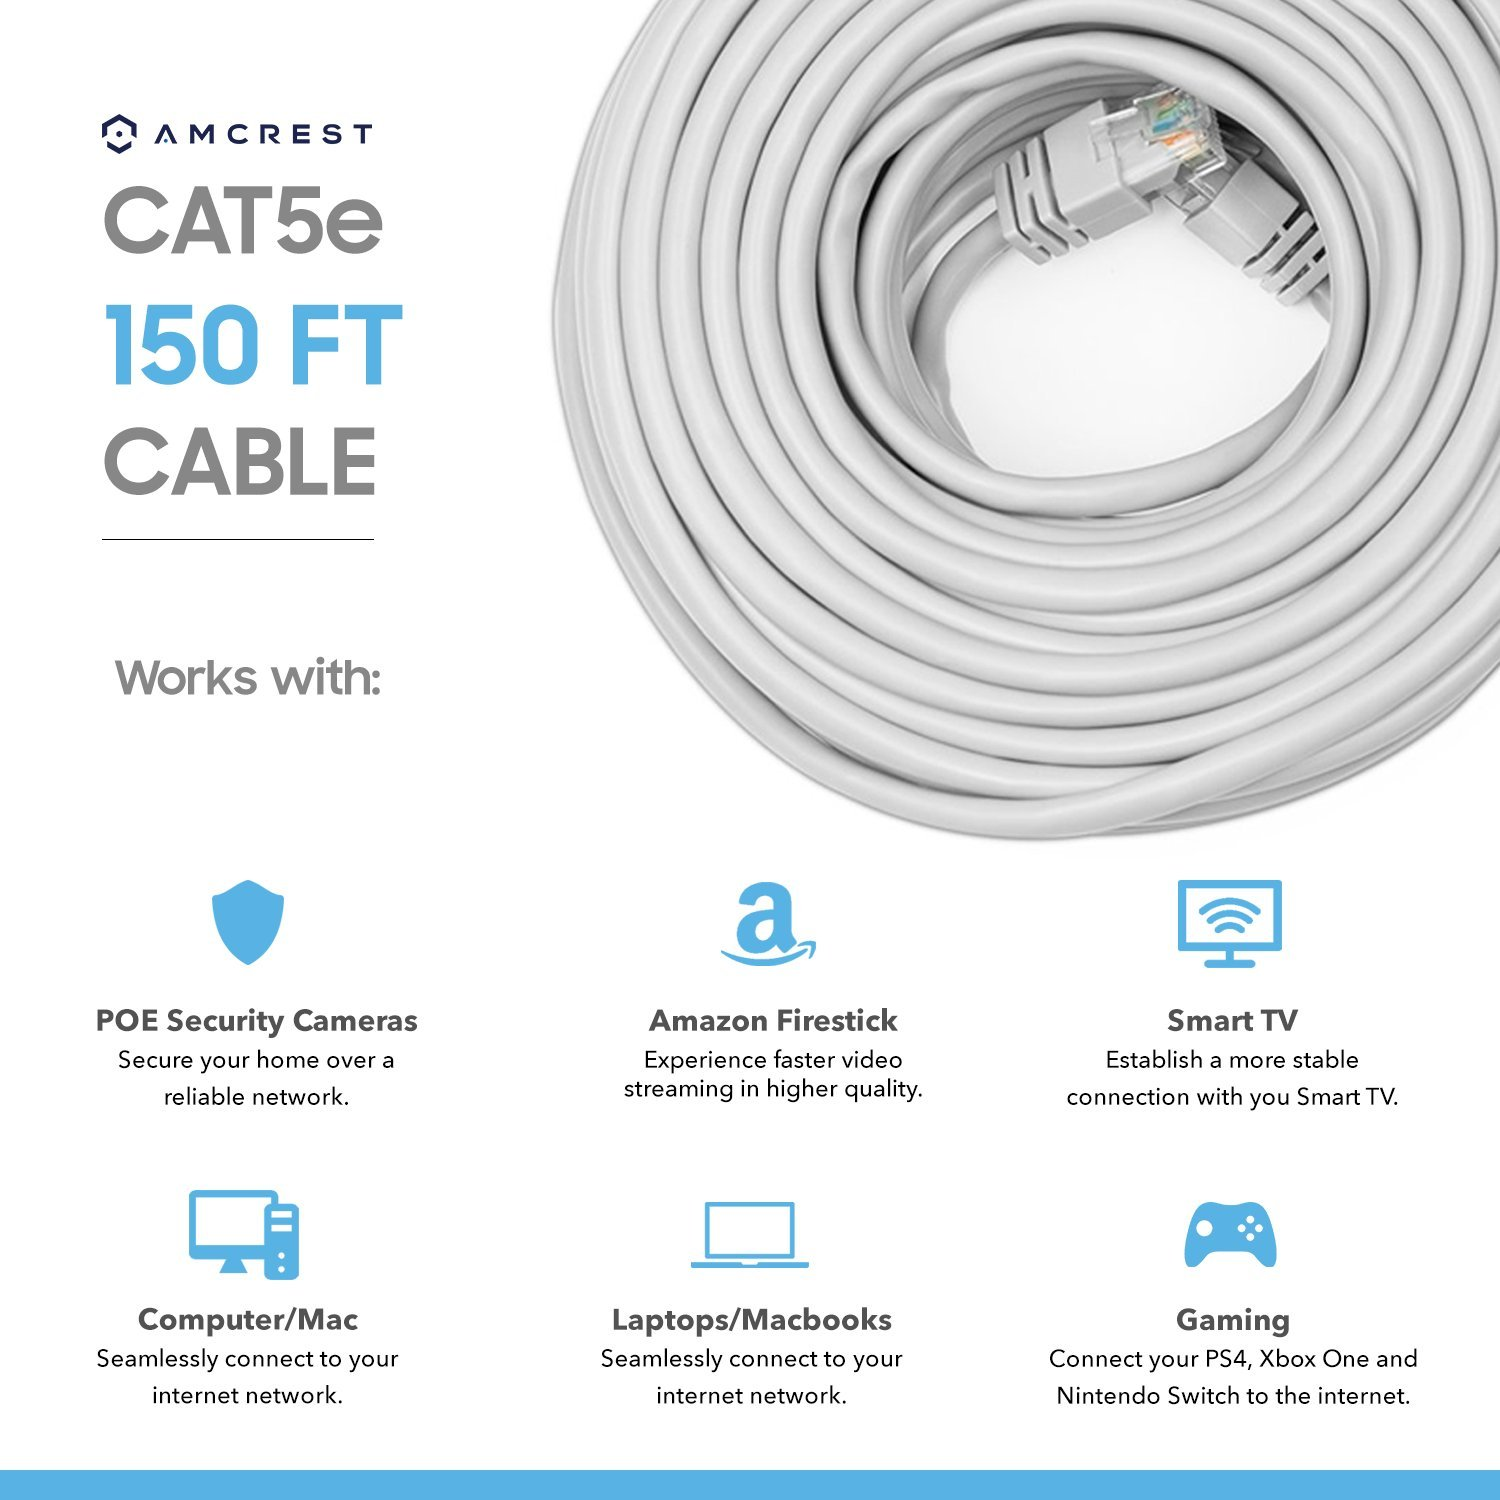 Amcrest Cat5e Cable 150ft Ethernet Cable Internet High Speed Network Cable for POE Security Cameras, Smart TV, PS4, Xbox One, Router, Laptop, Computer, Home, 2-Pack (2PACK-CAT5ECABLE150) by Amcrest (Image #2)